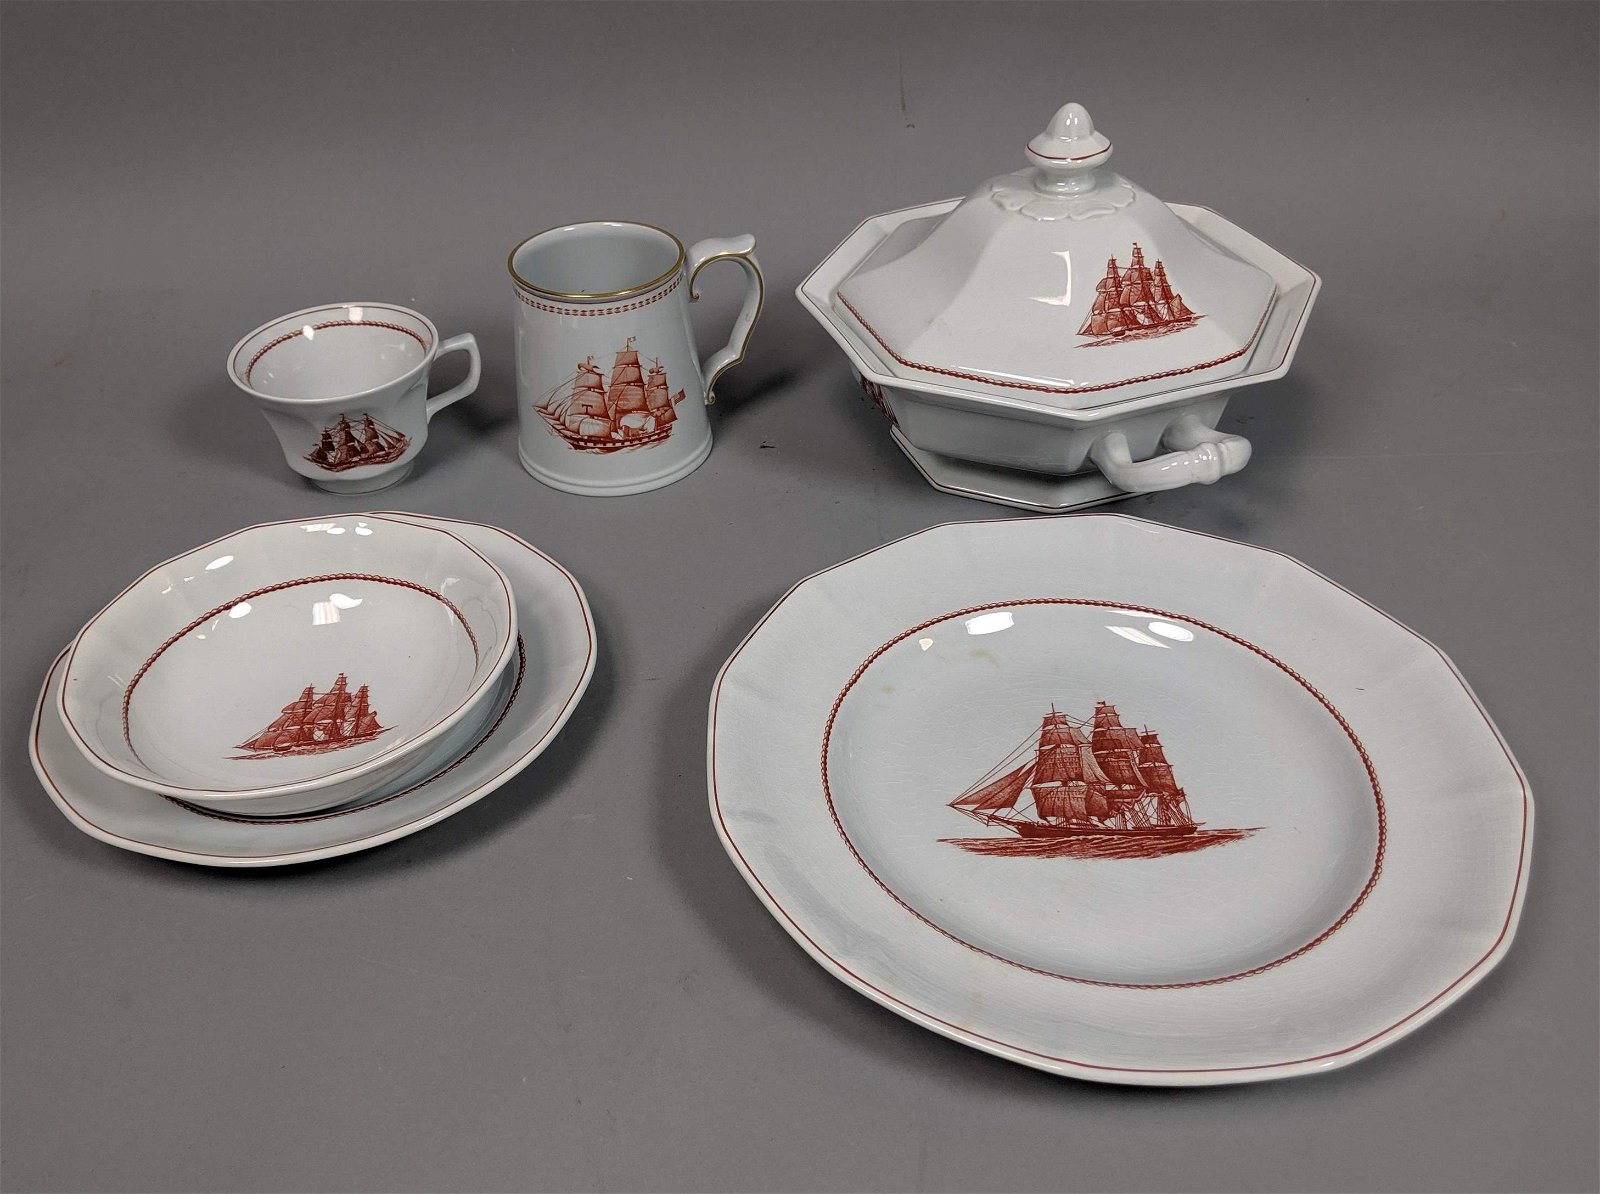 89pc Set WEDGWOOD Flying Cloud Porcelain Dinnerwa